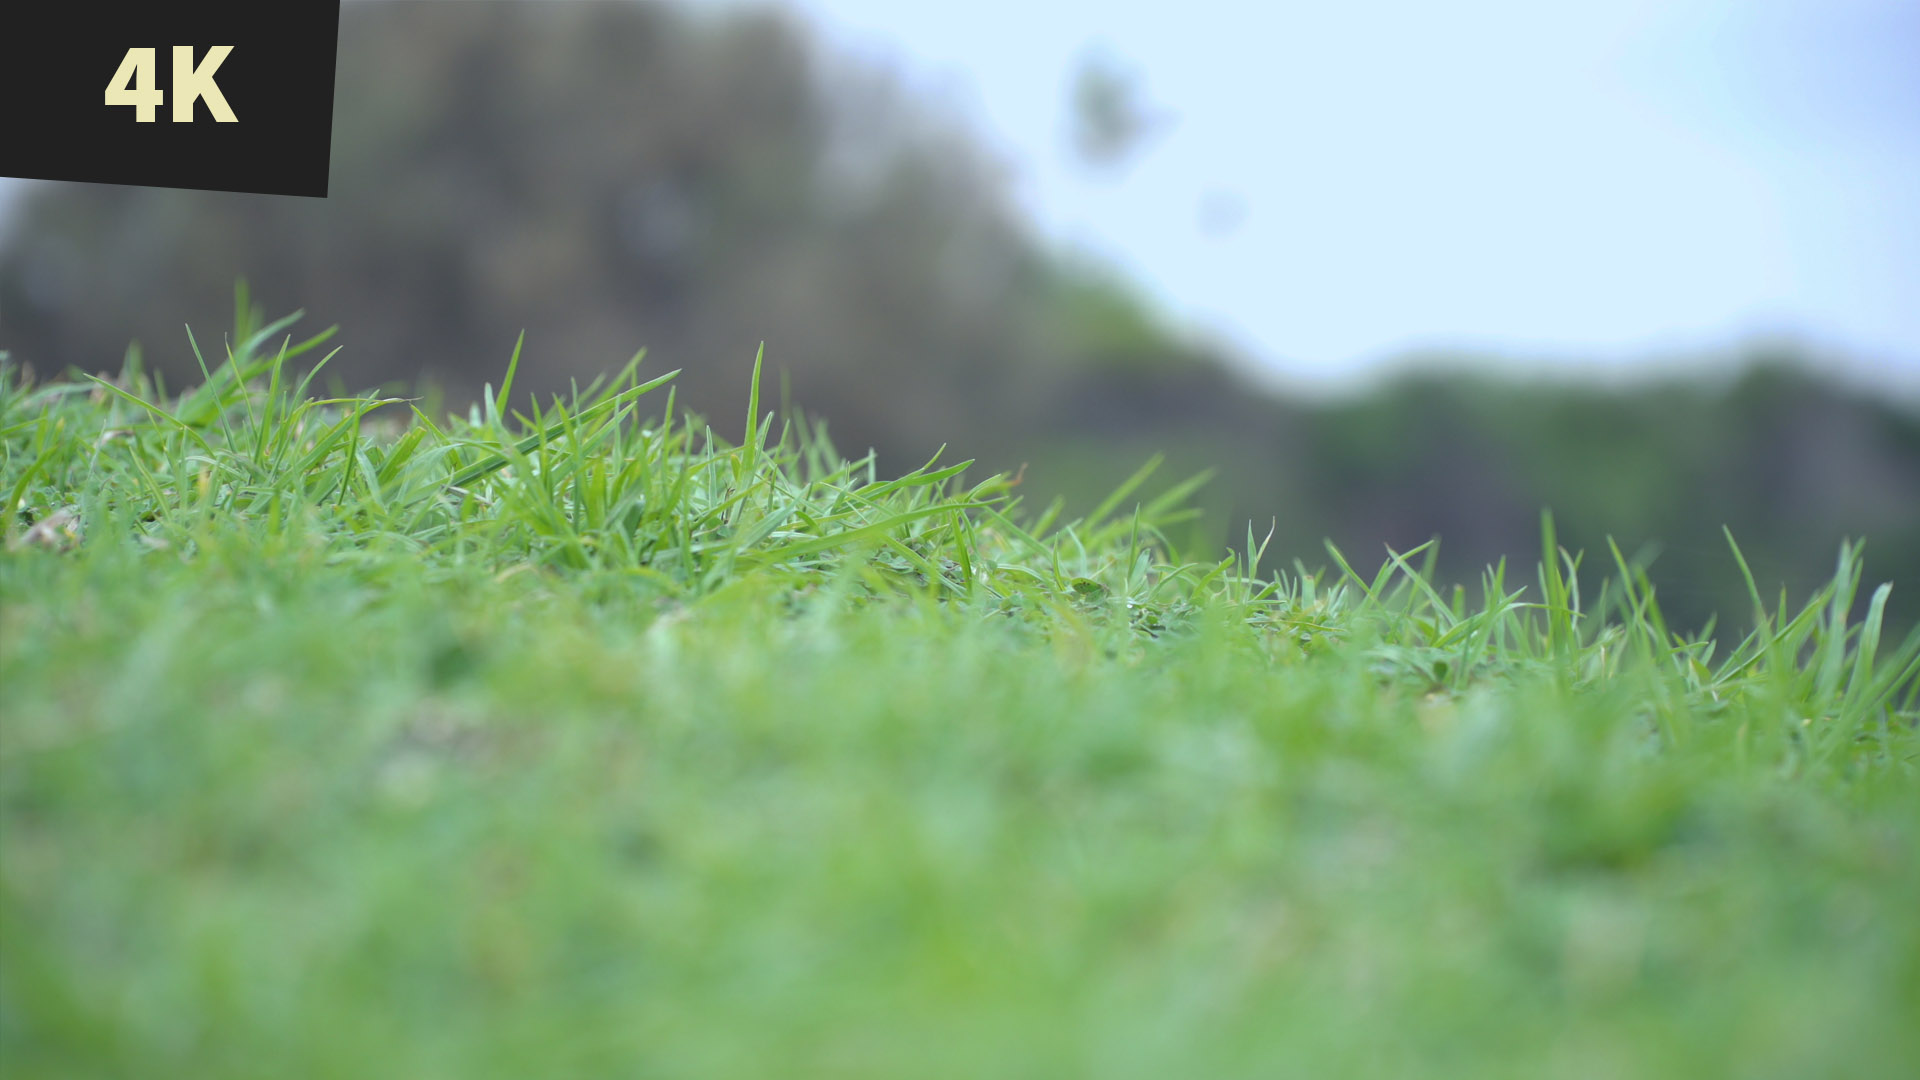 Royalty Free Stock Video Victor Harbour Bluff South Australia Grass on the hill overlooking lake ocean with boat 4K 24FPS img2